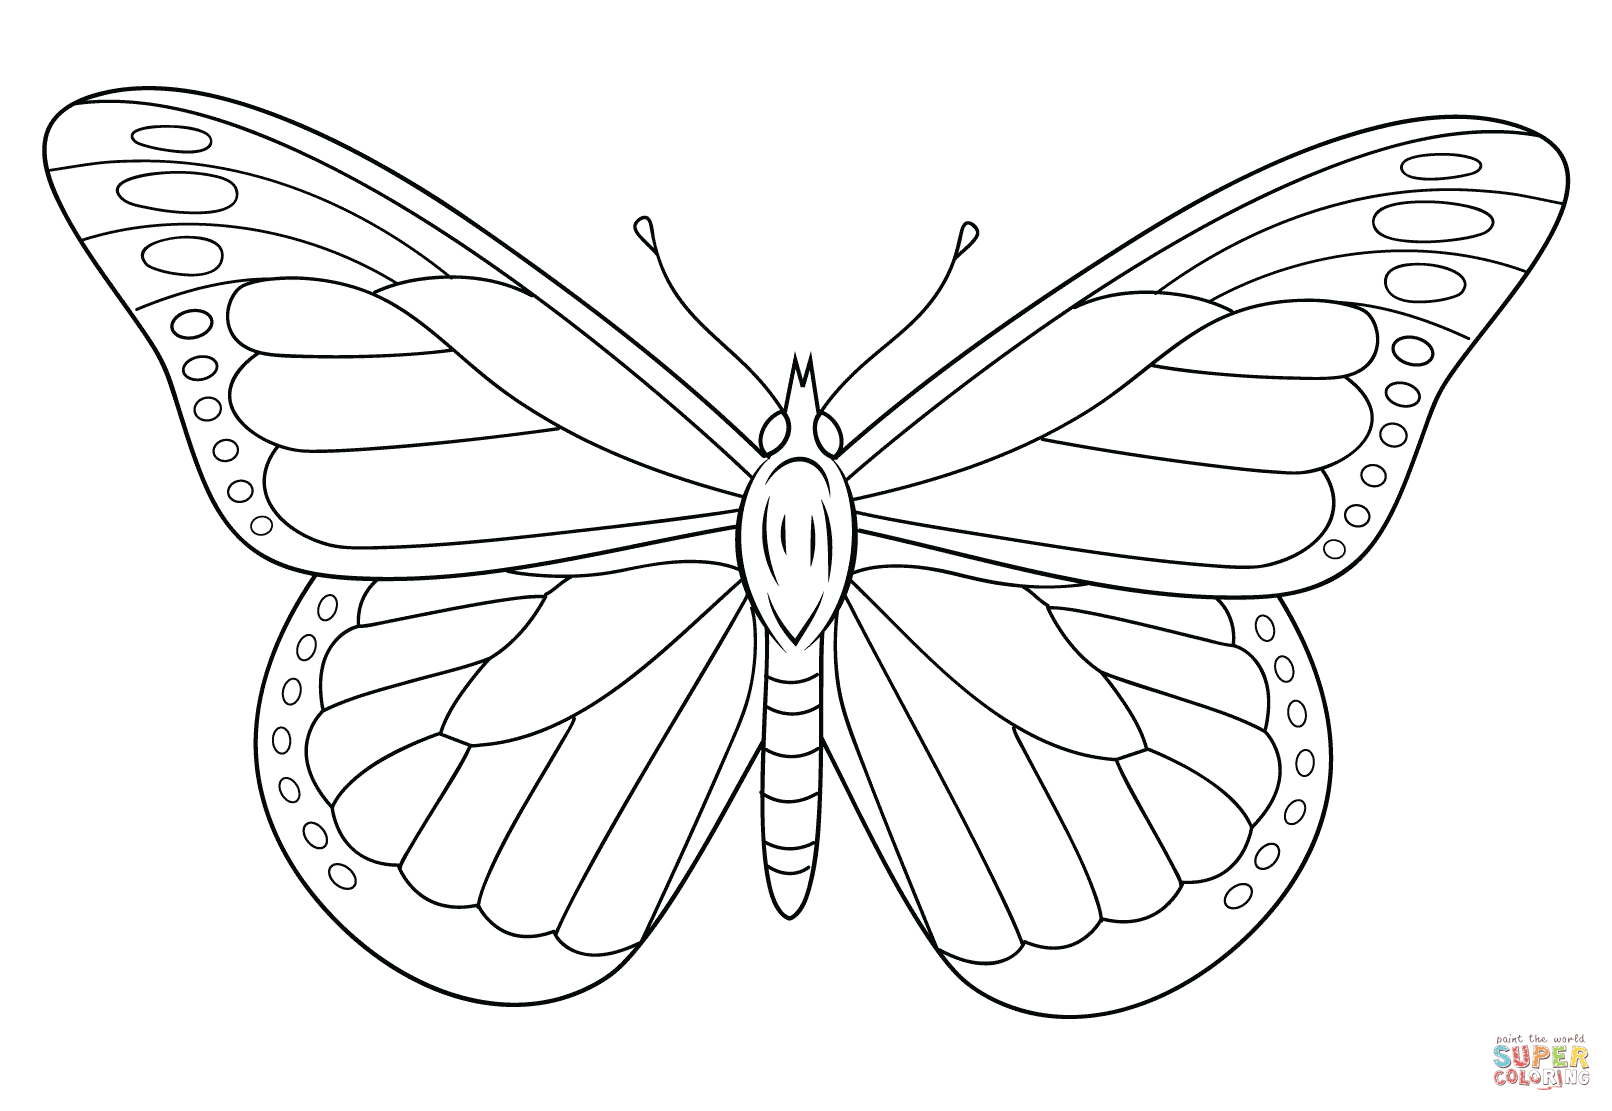 1612x1111 Destiny Butterfly Out Line Outline Image